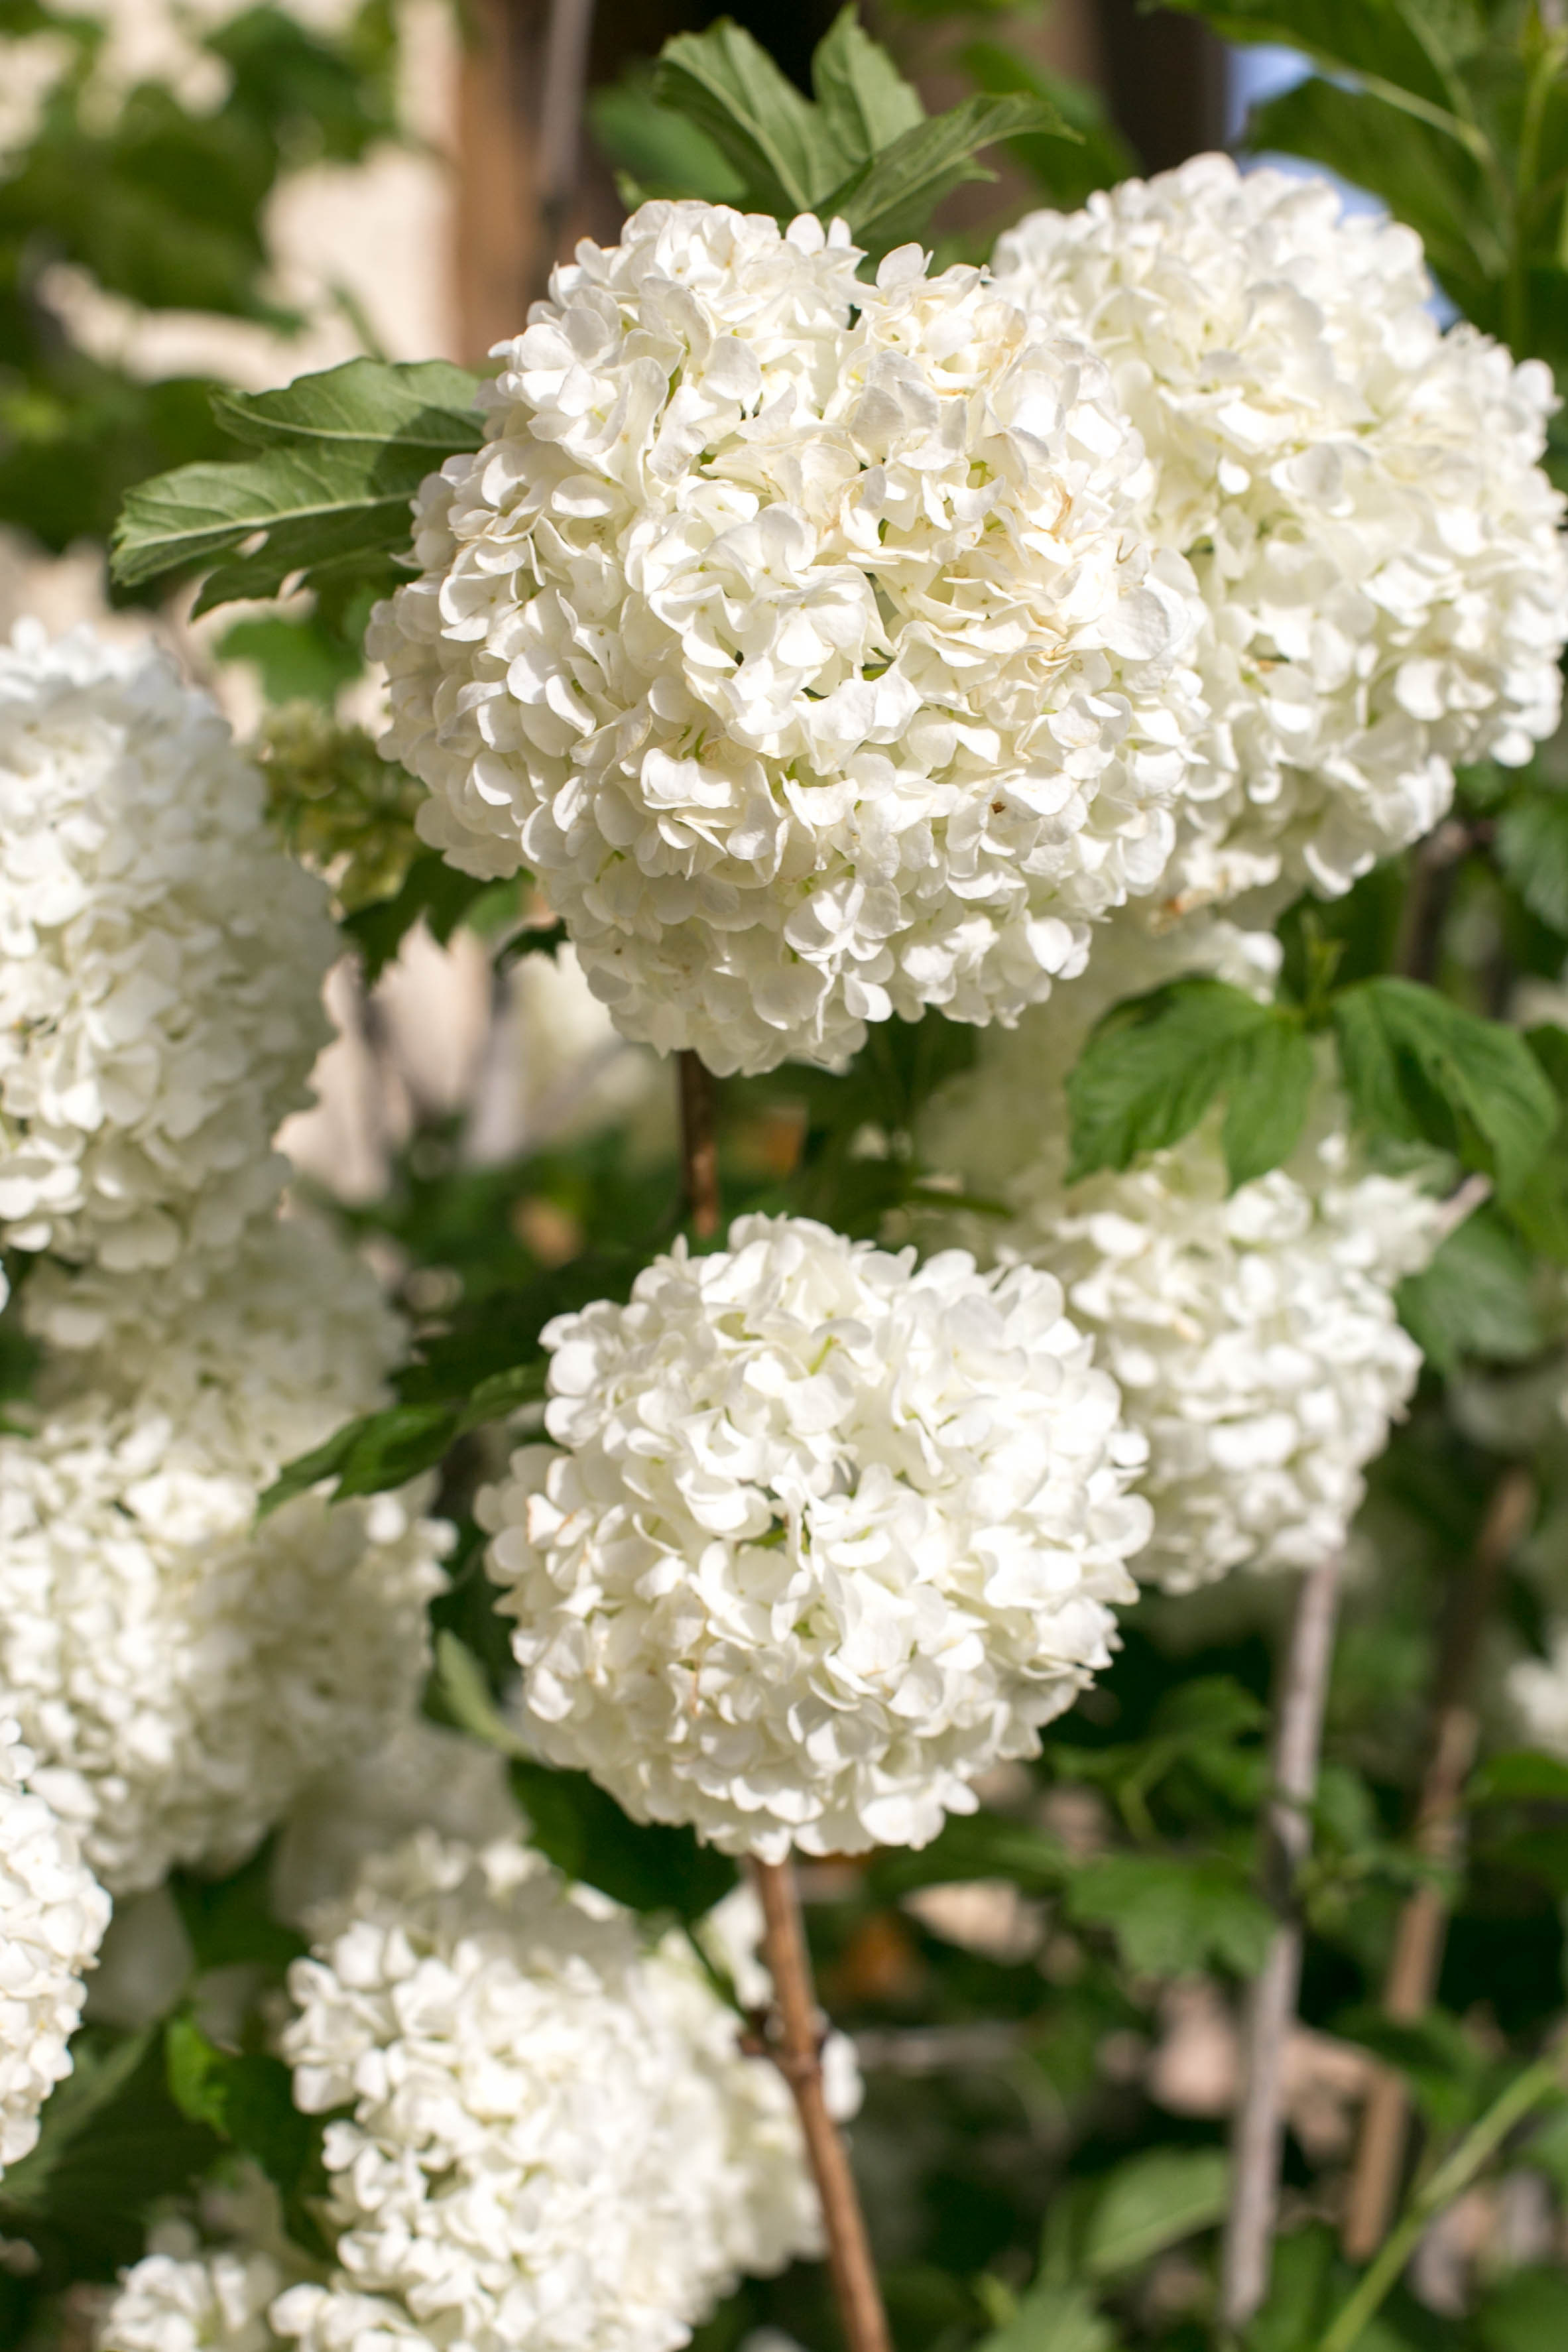 Eastern Snowball (Viburnum opulus). Masses of pure white, snowball-like flower clusters make a showy display. Bright green leaves have a purplish-red fall coloring.